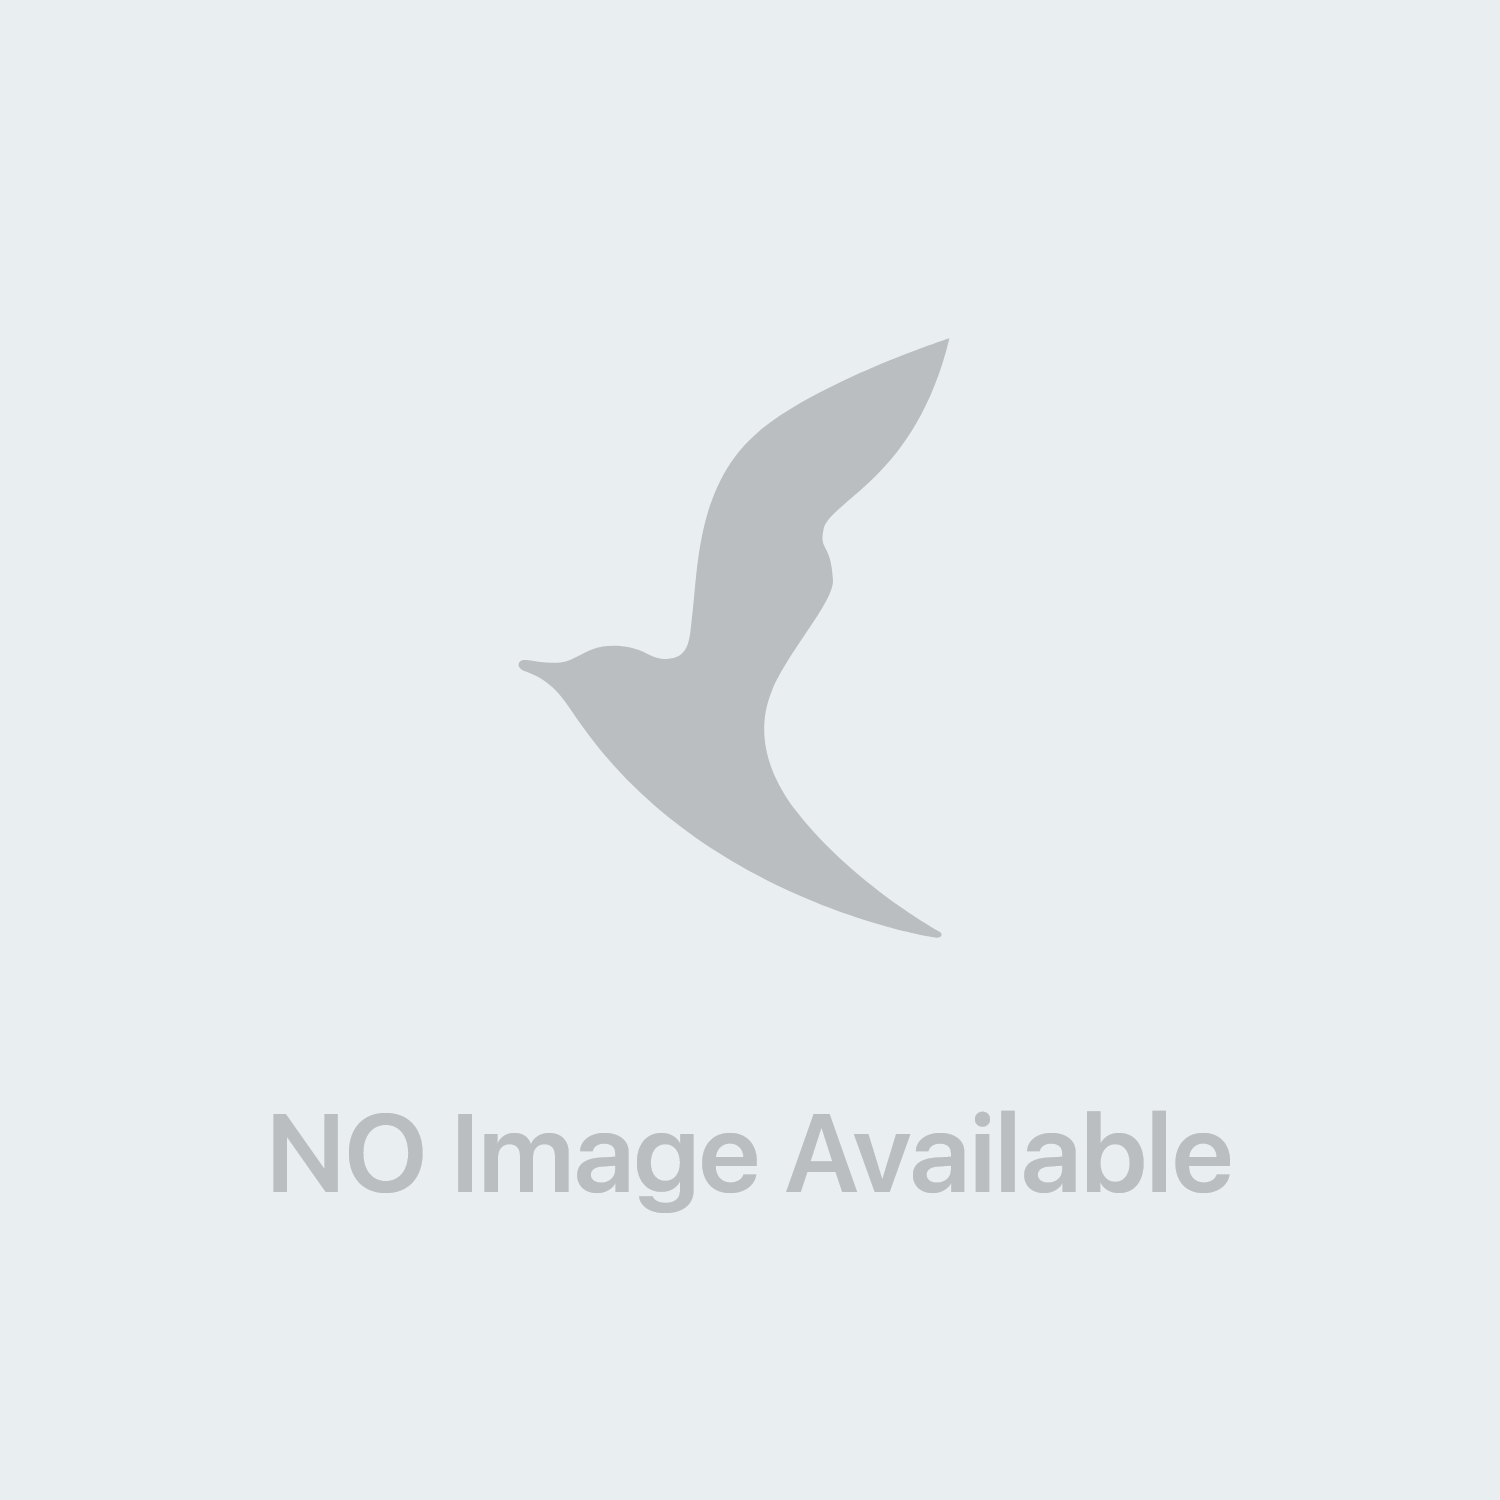 Sebamed Detergente Liquido 200 ml